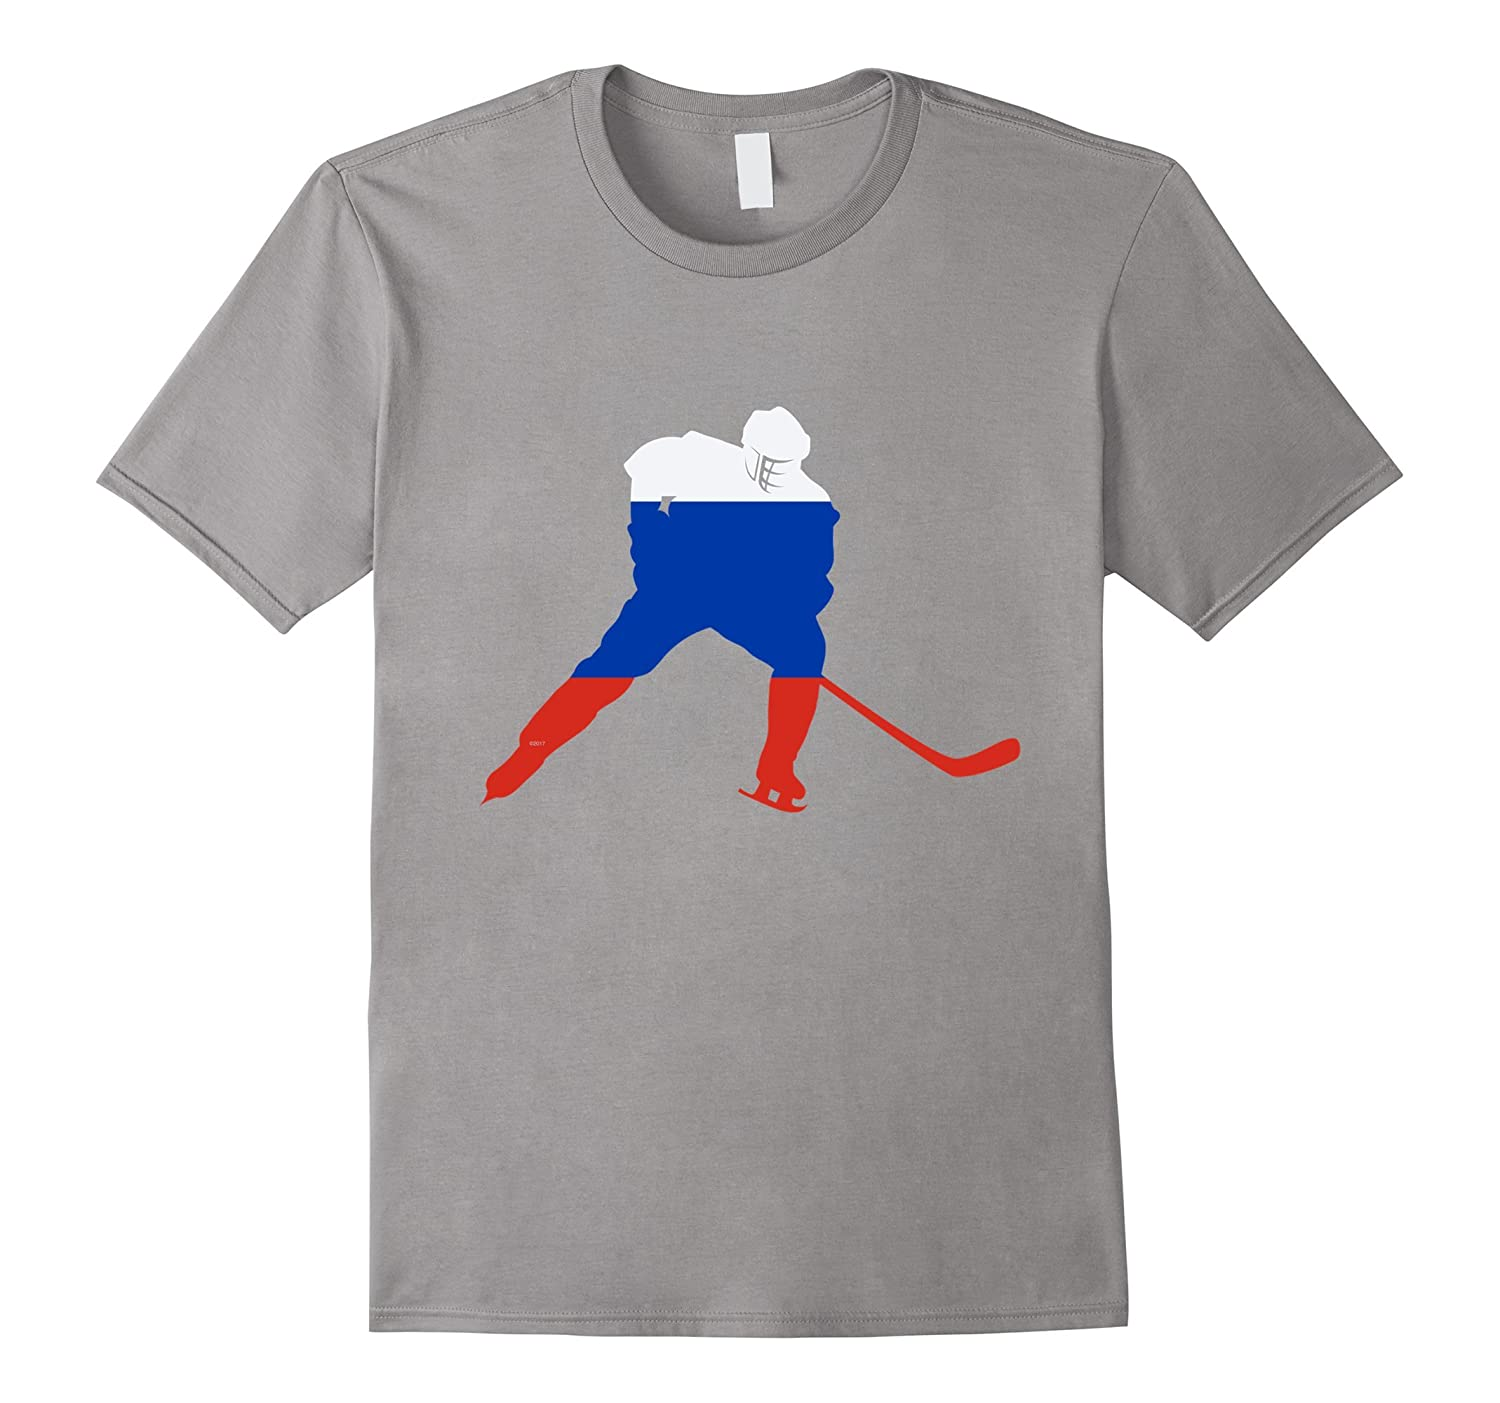 Russia Ice Hockey Shirt Russian Player Love Team Stick Puck-Vaci